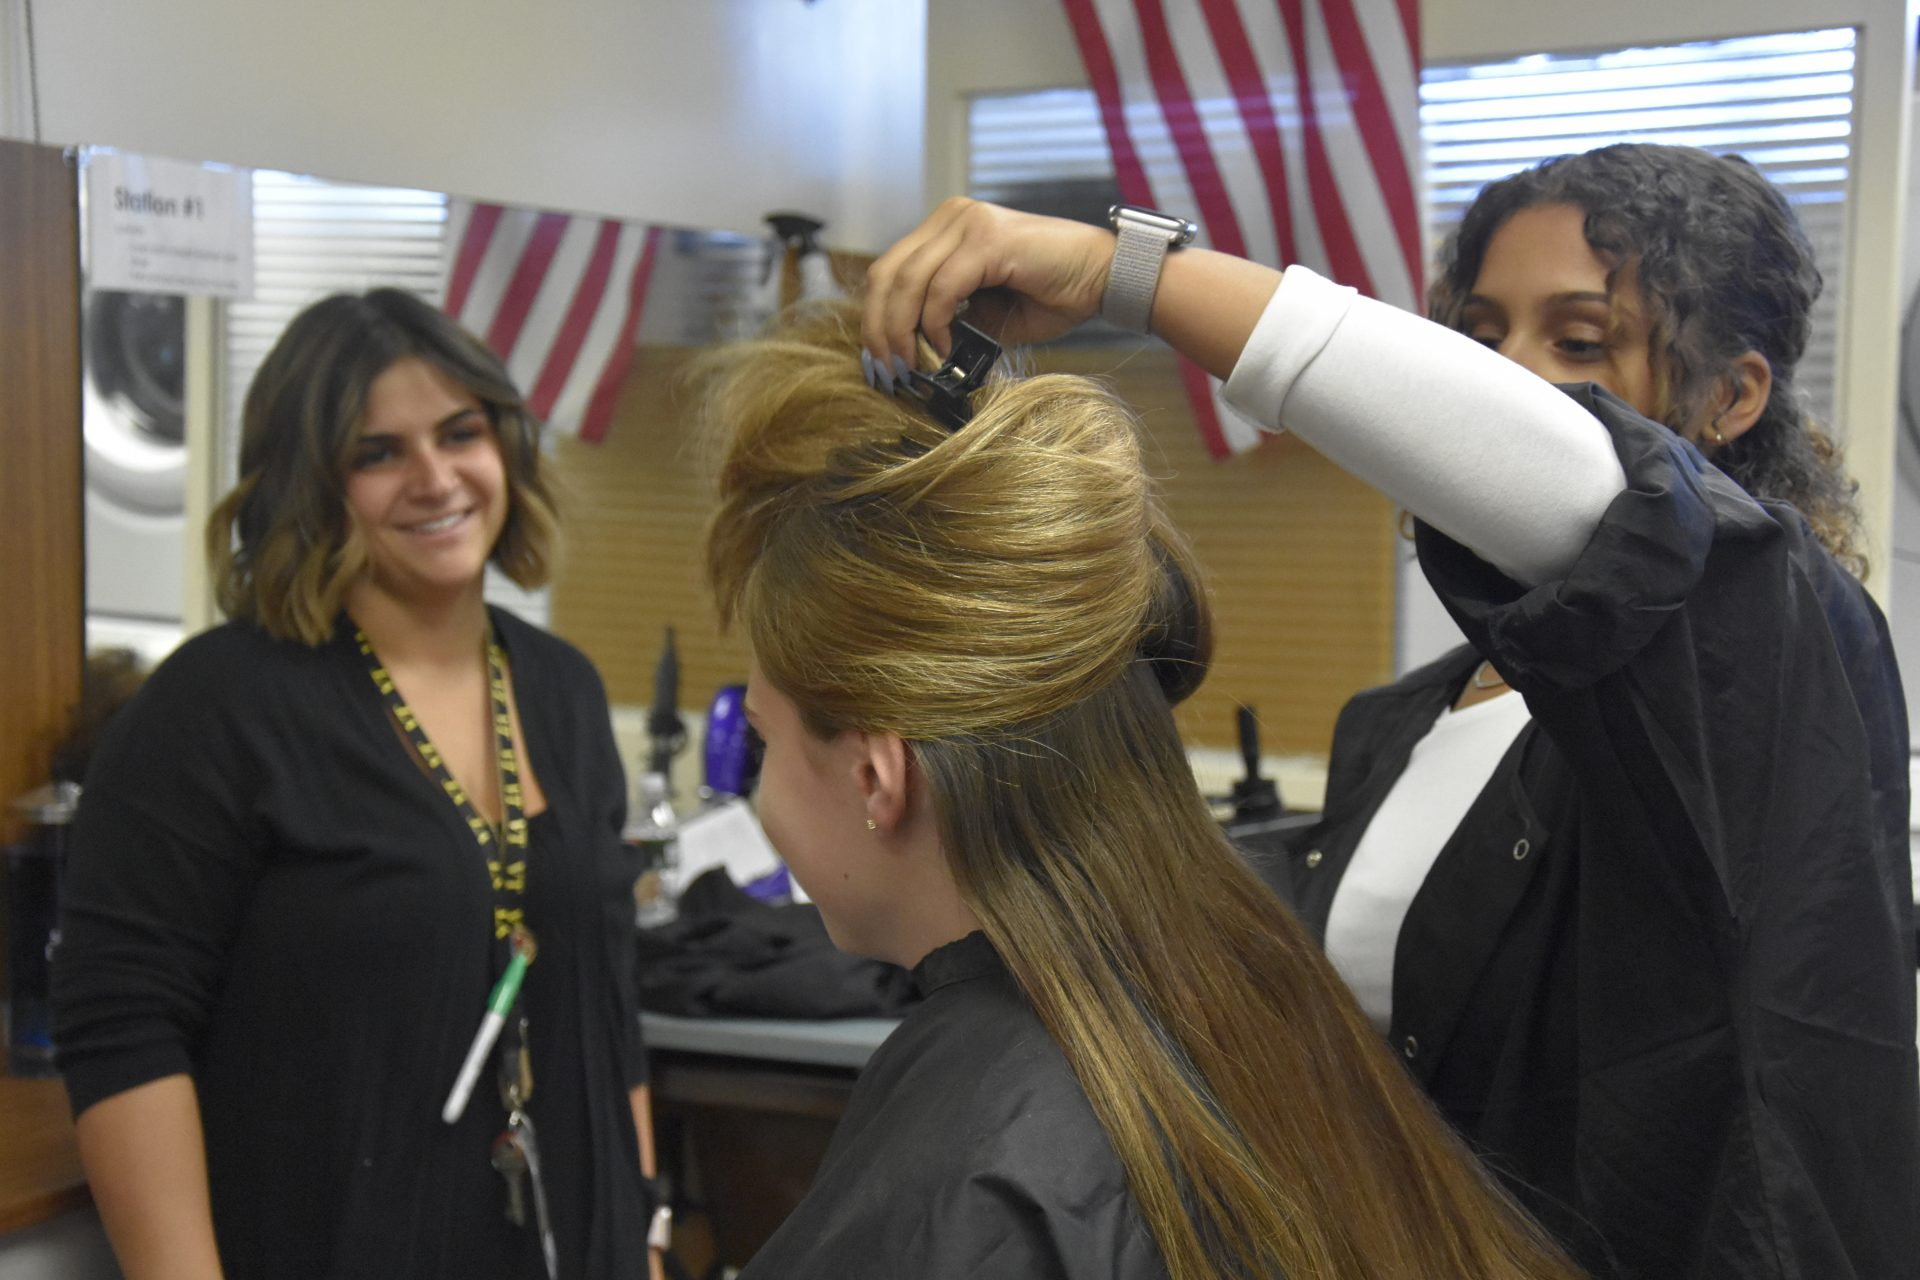 Cosmo students doing hair whil teacher watches